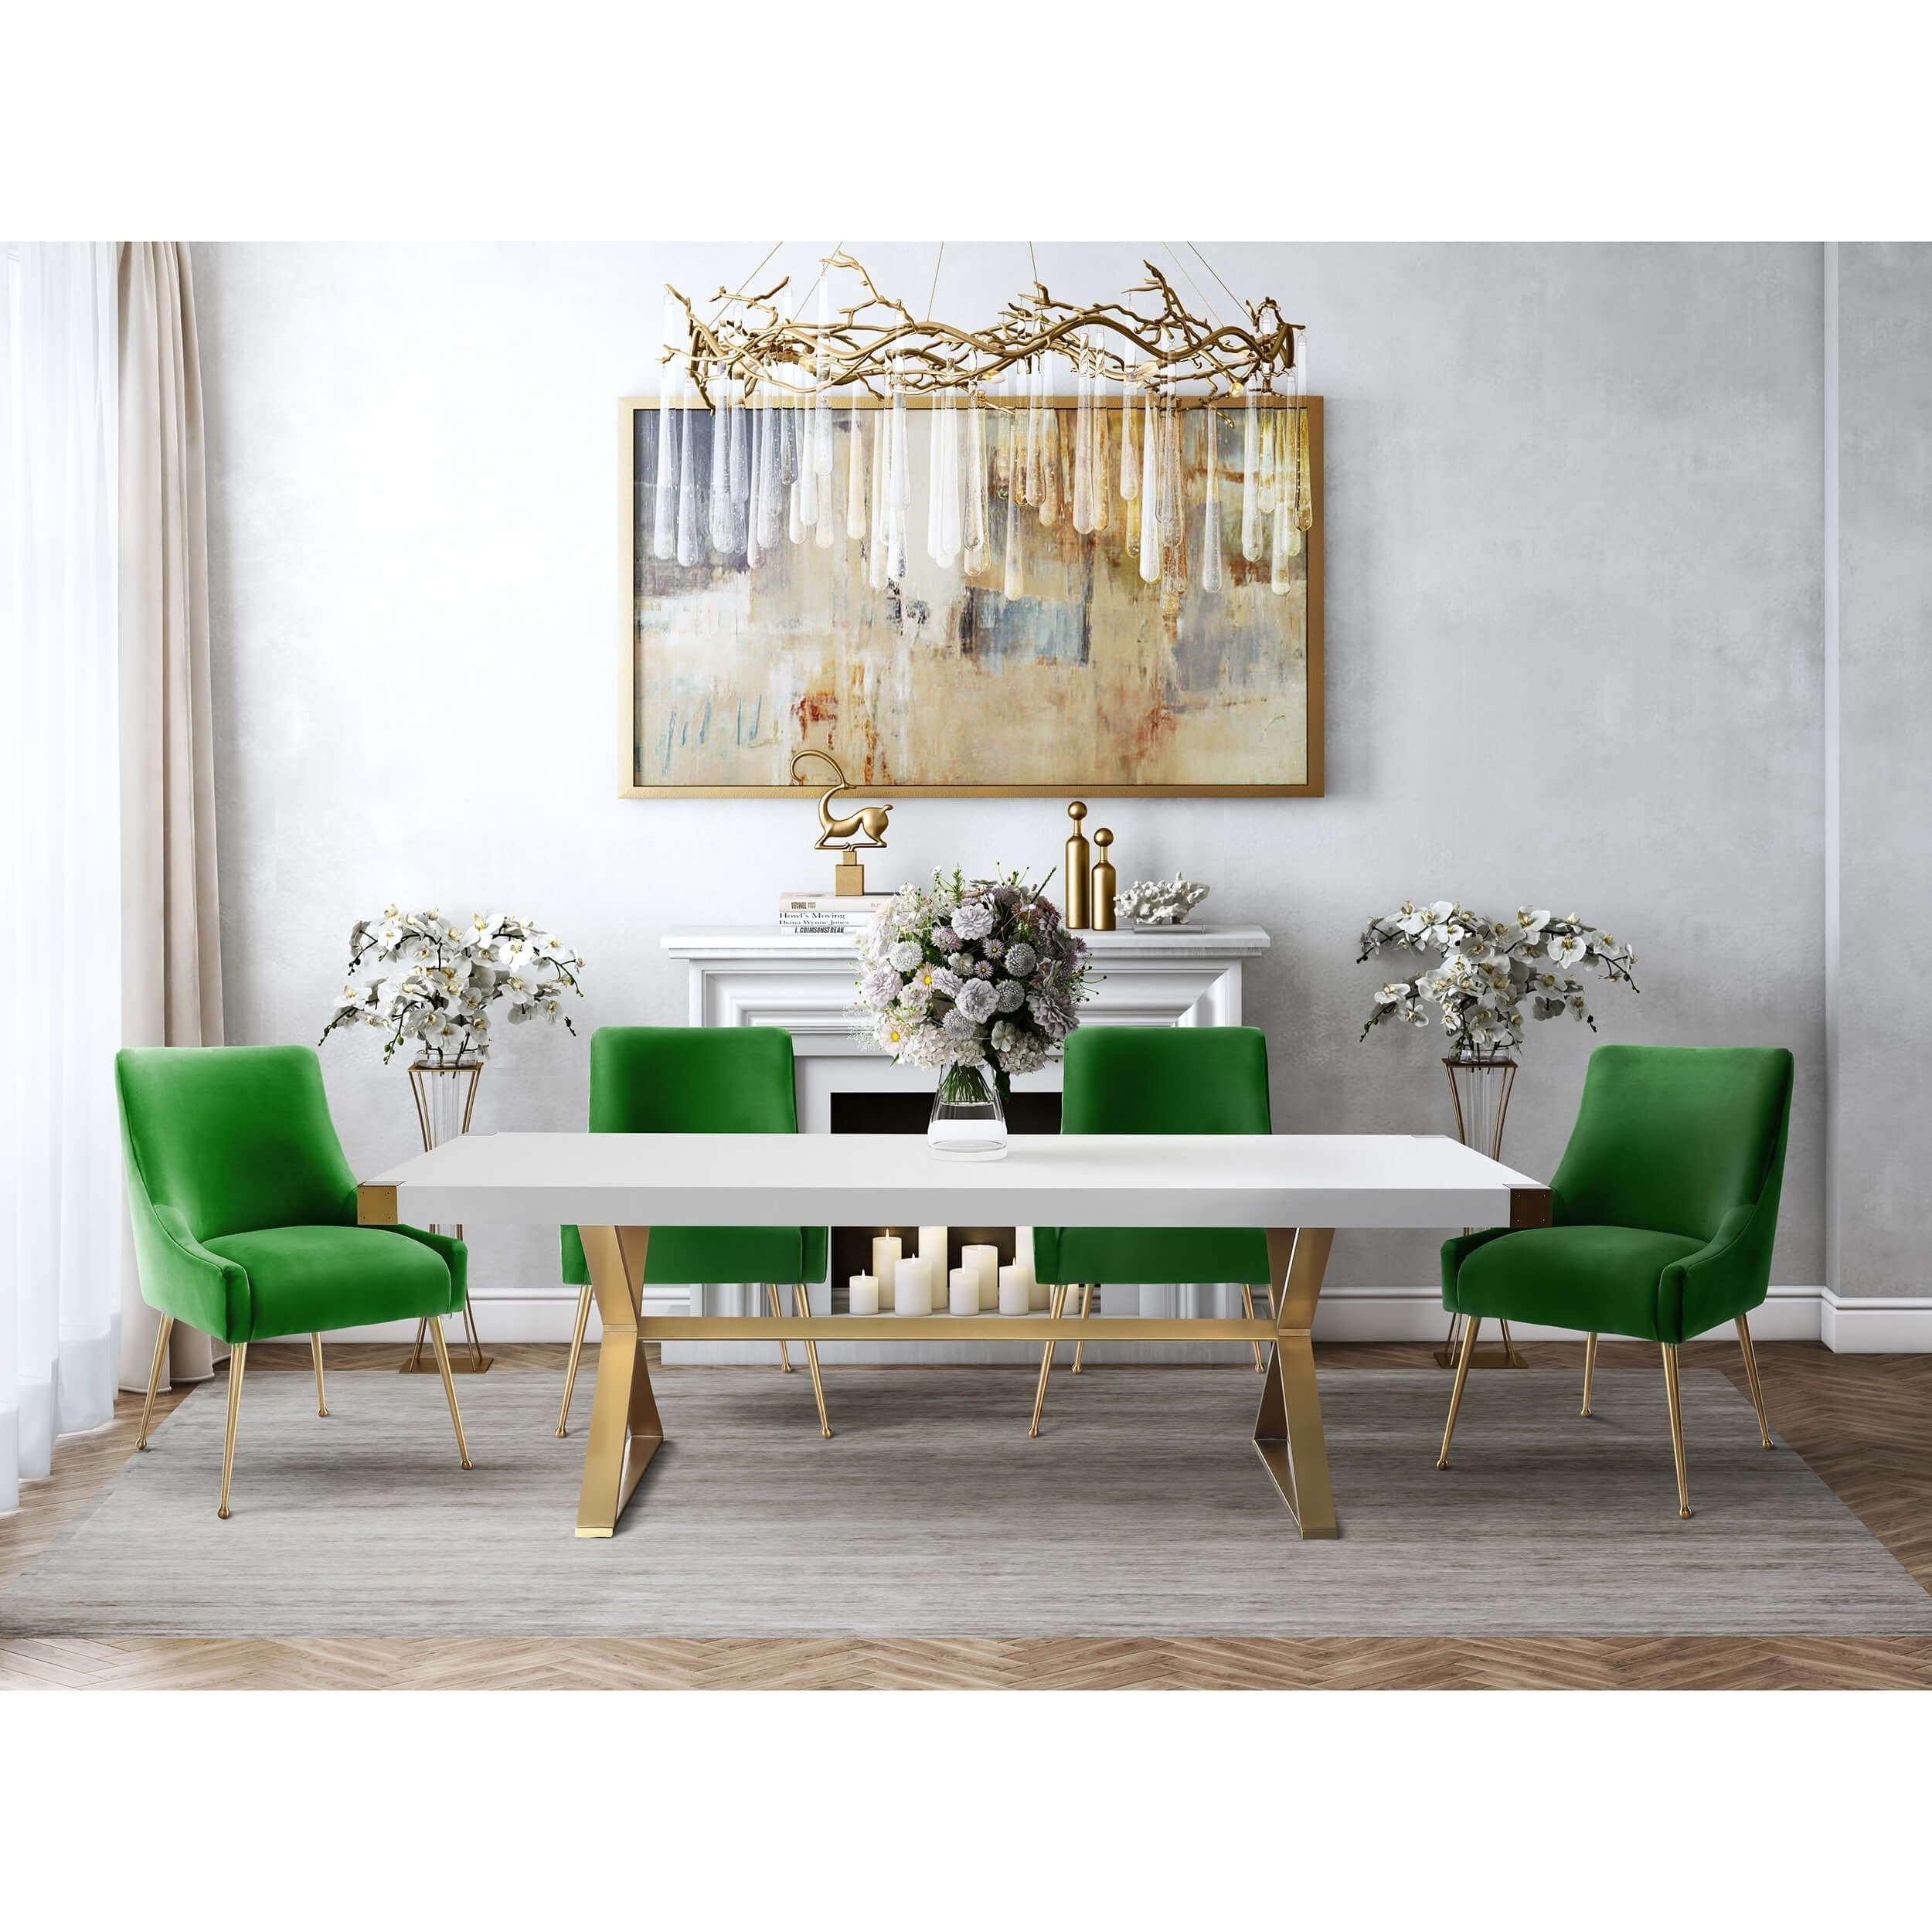 Beatrix Side Chair Green Brushed Gold Base Sala Da Pranzo Mobili Idee Sala Da Pranzo Mobili Soggiorno